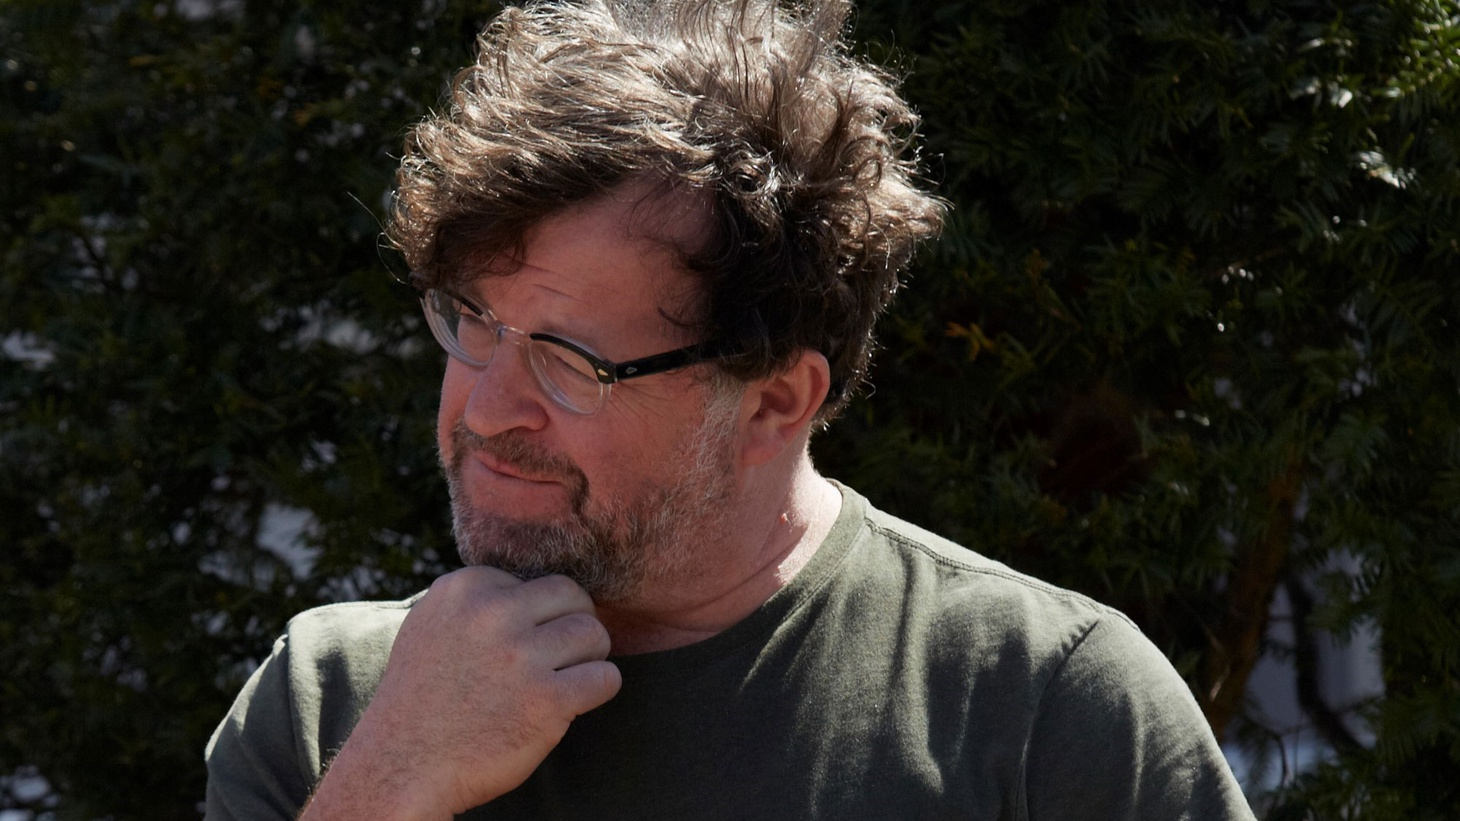 Writer/director Kenneth Lonergan join Elvis Mitchell to discuss creating believable on-screen human interaction in Manchester by the Sea.